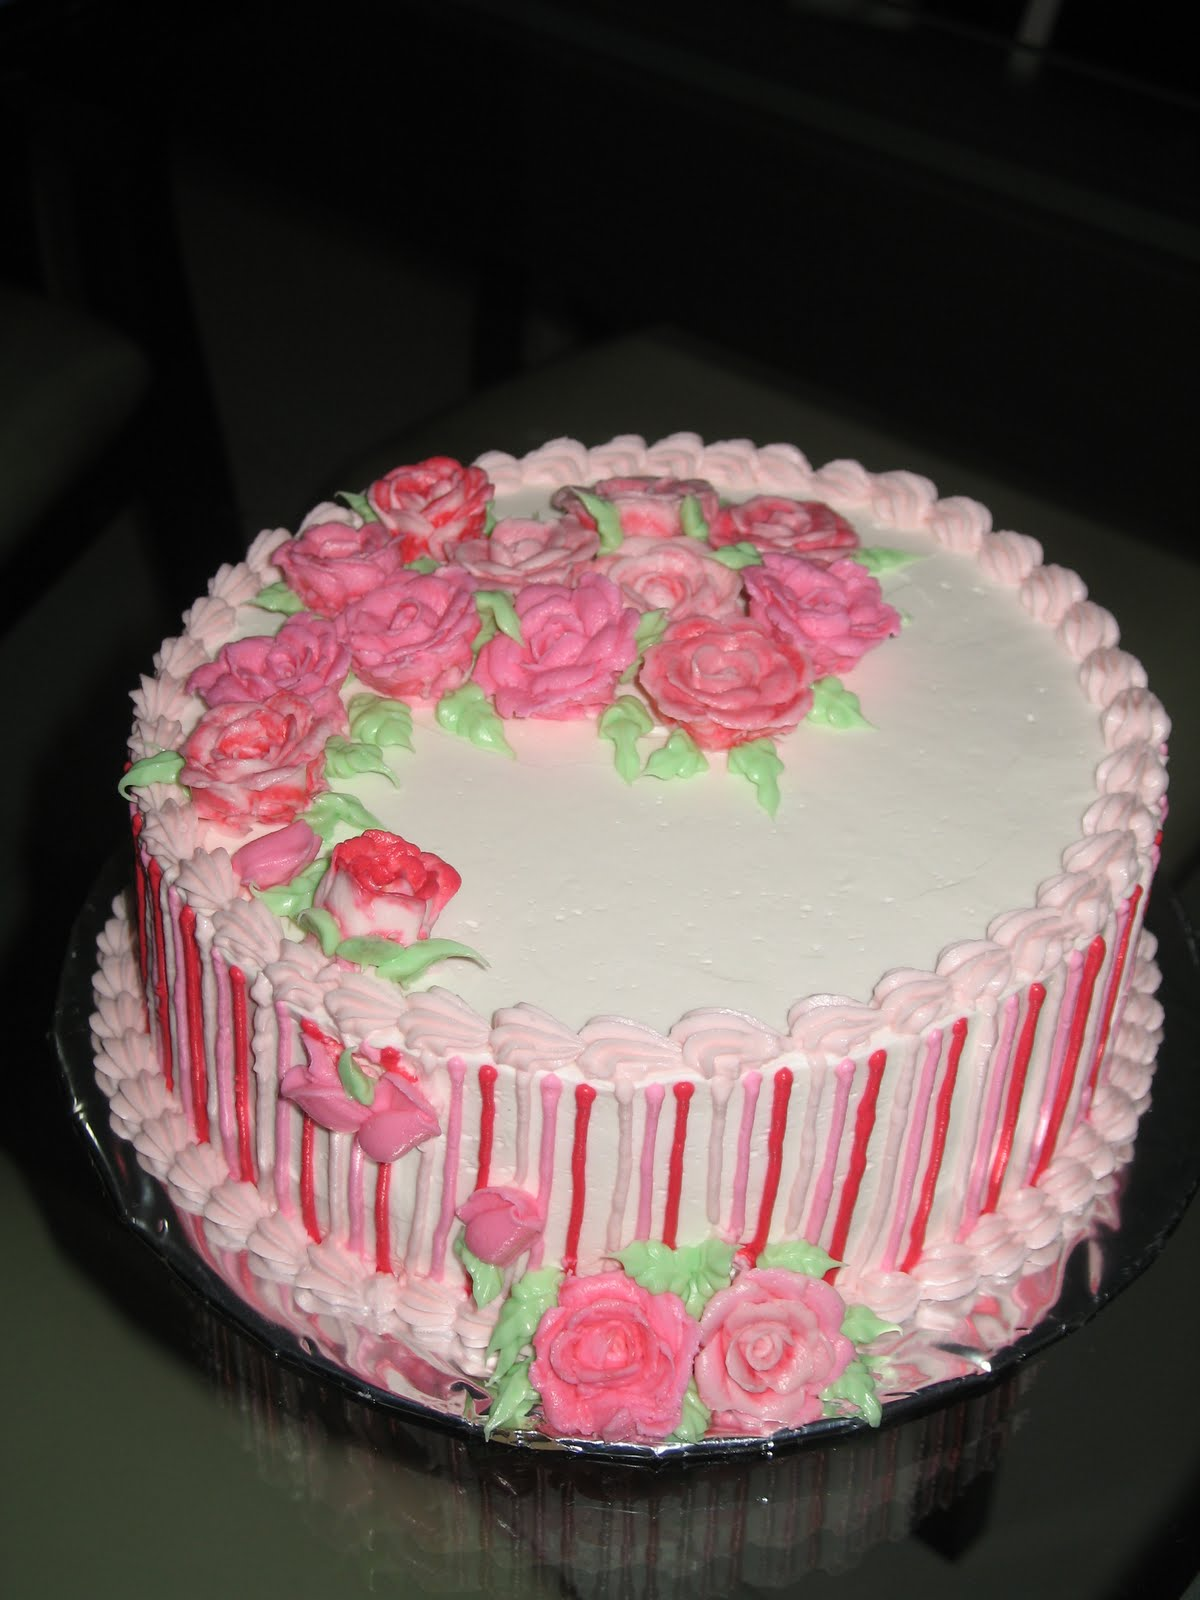 Best Fun In Cake Decorating Wilton Cake Decorating Course 1 This Month